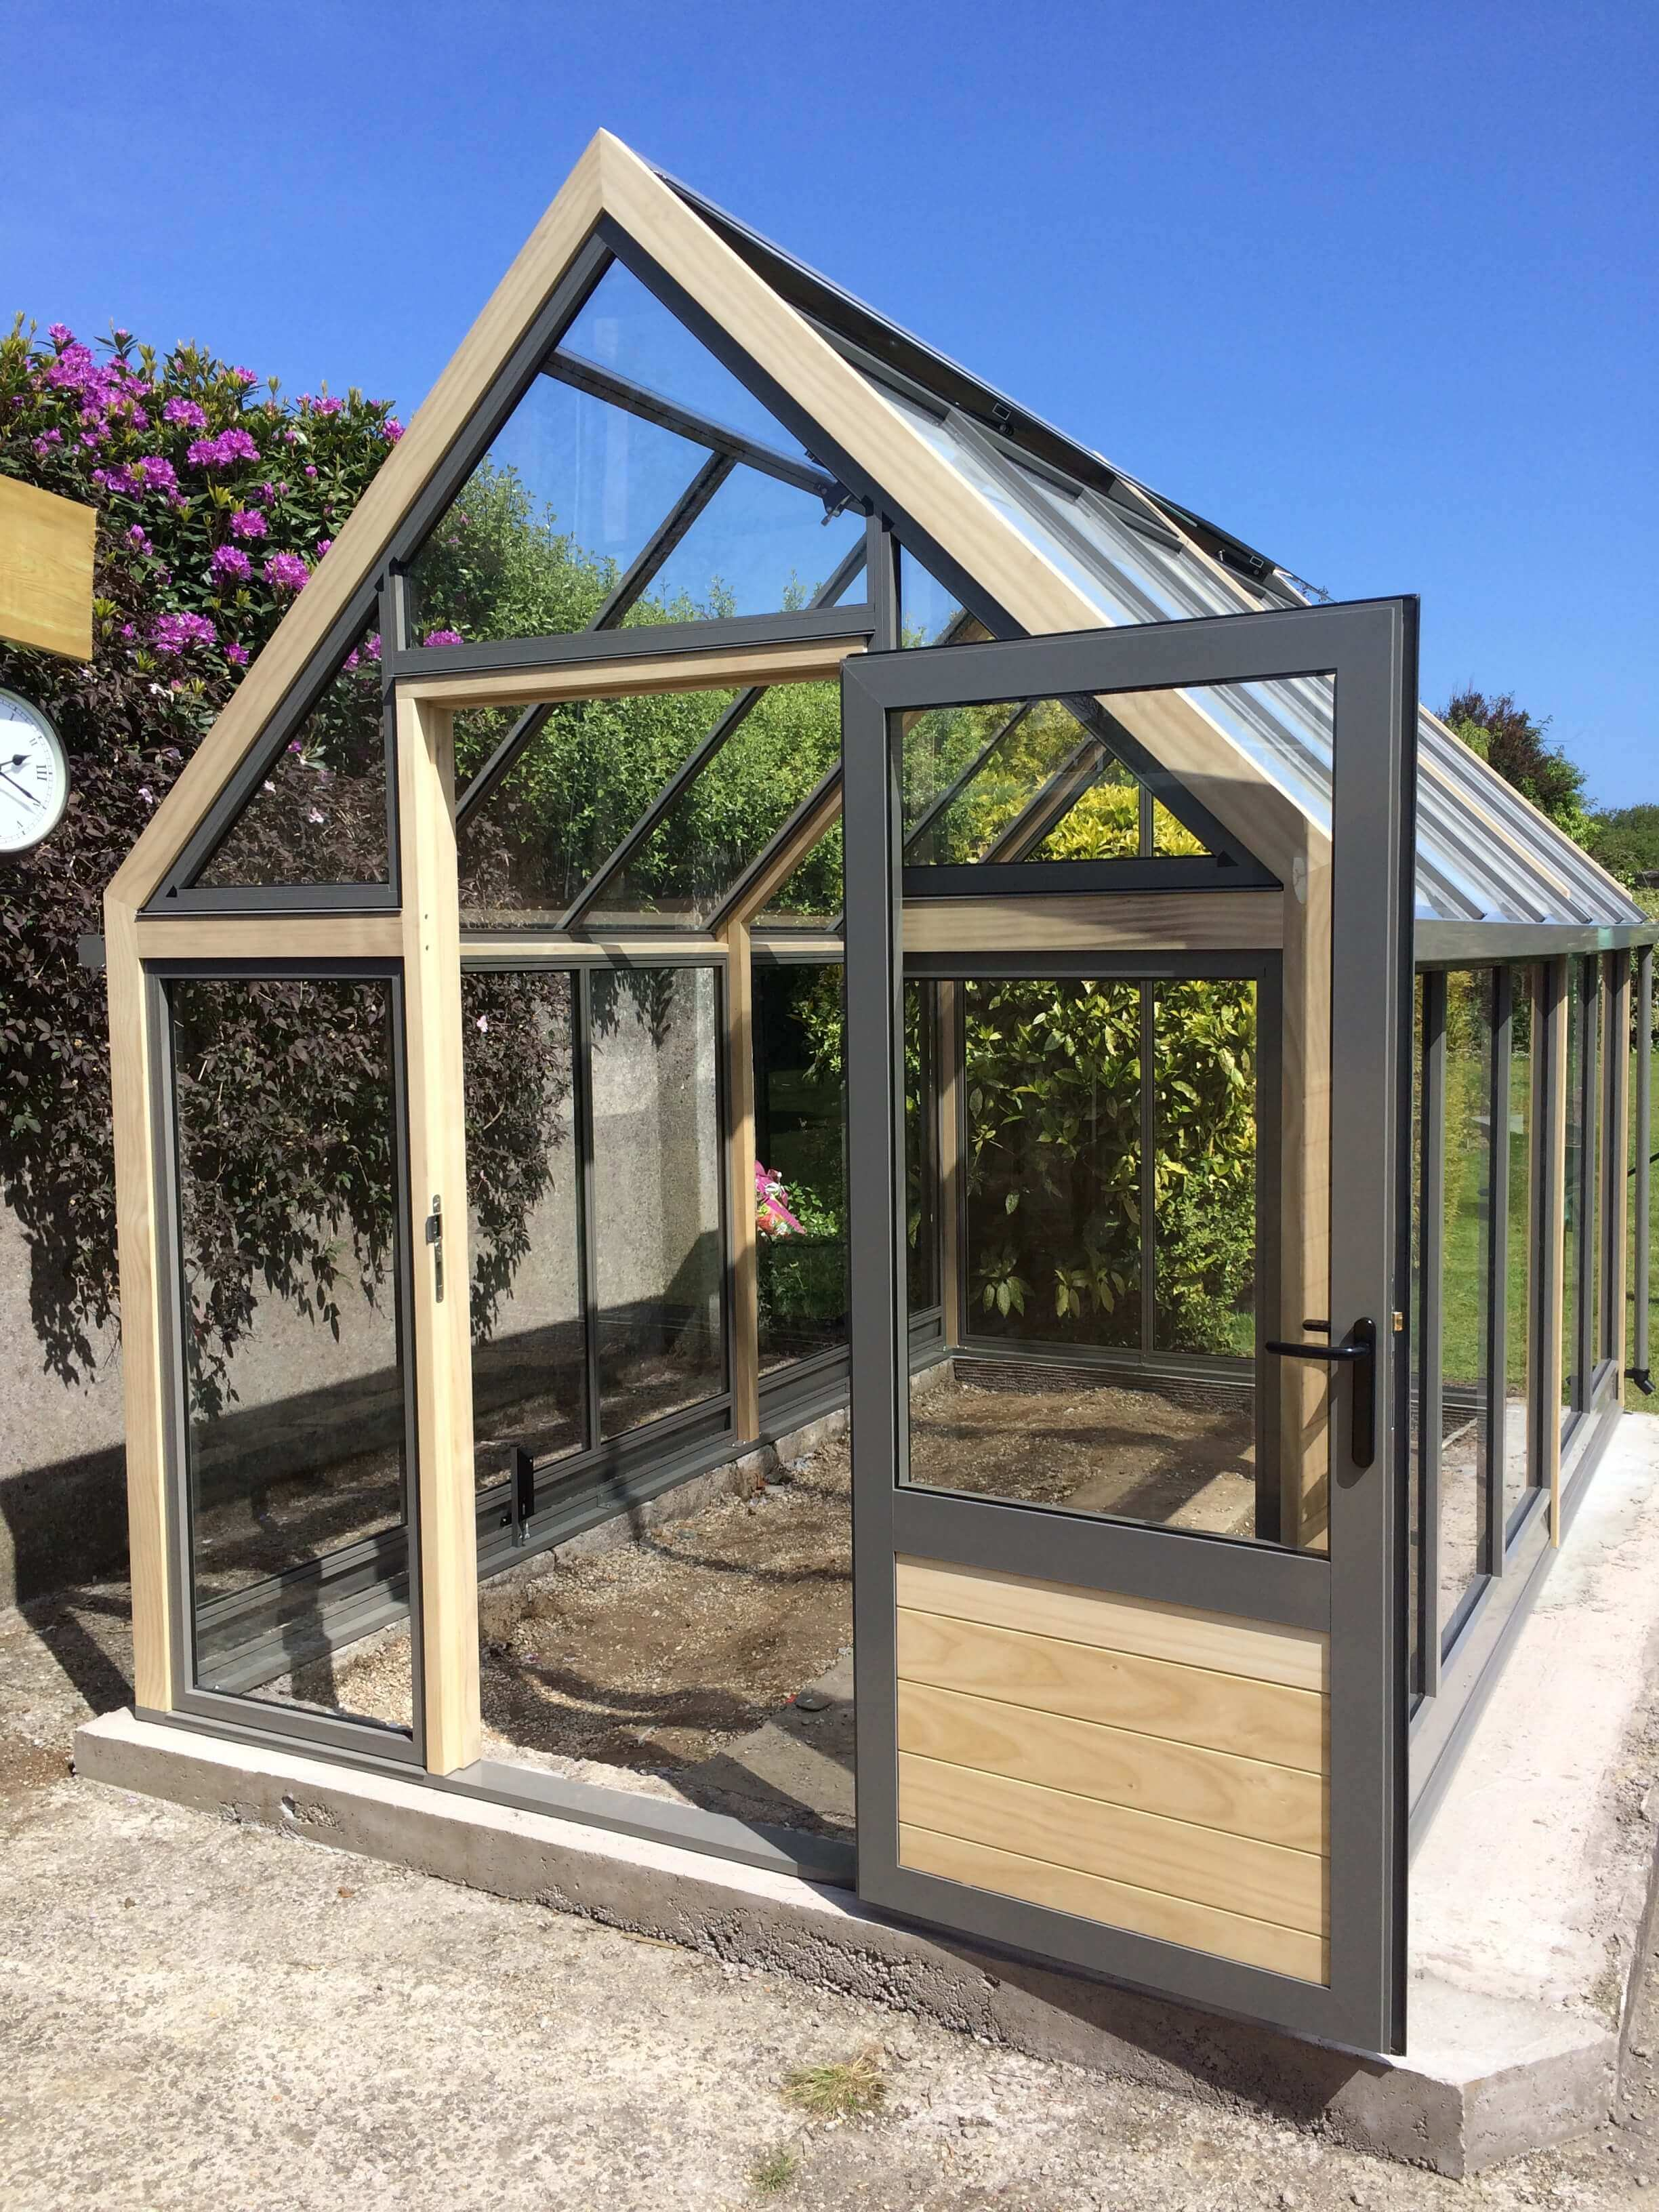 A new beautiful greenhouse